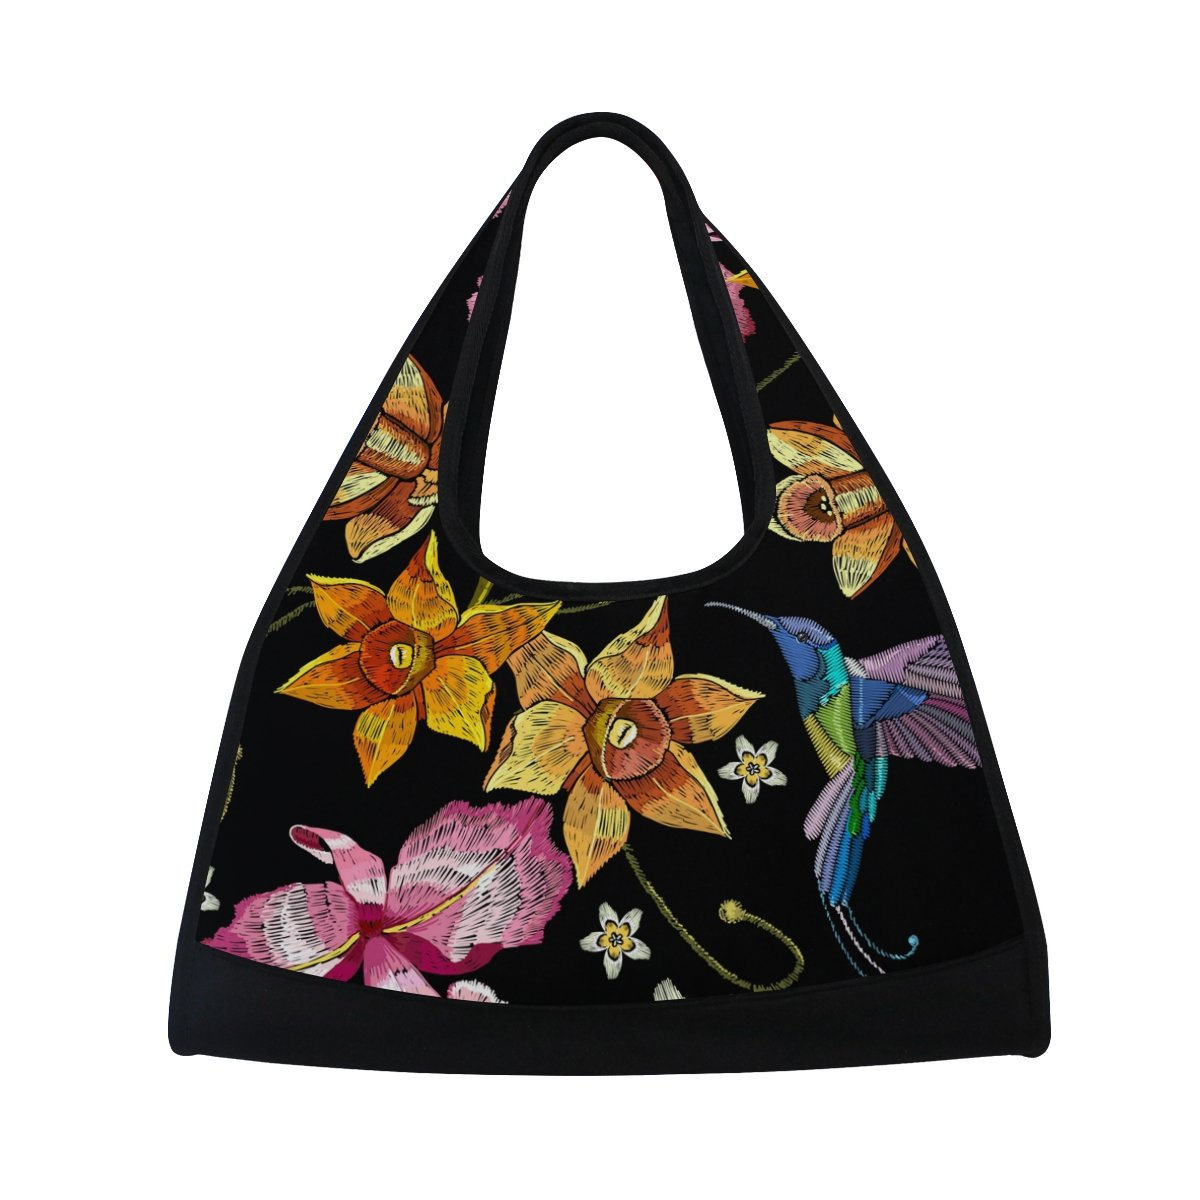 AHOMY Sports Gym Bag Flower Hummingbirds Embroidery Duffel Bag Travel Shoulder Bag by AHOMY